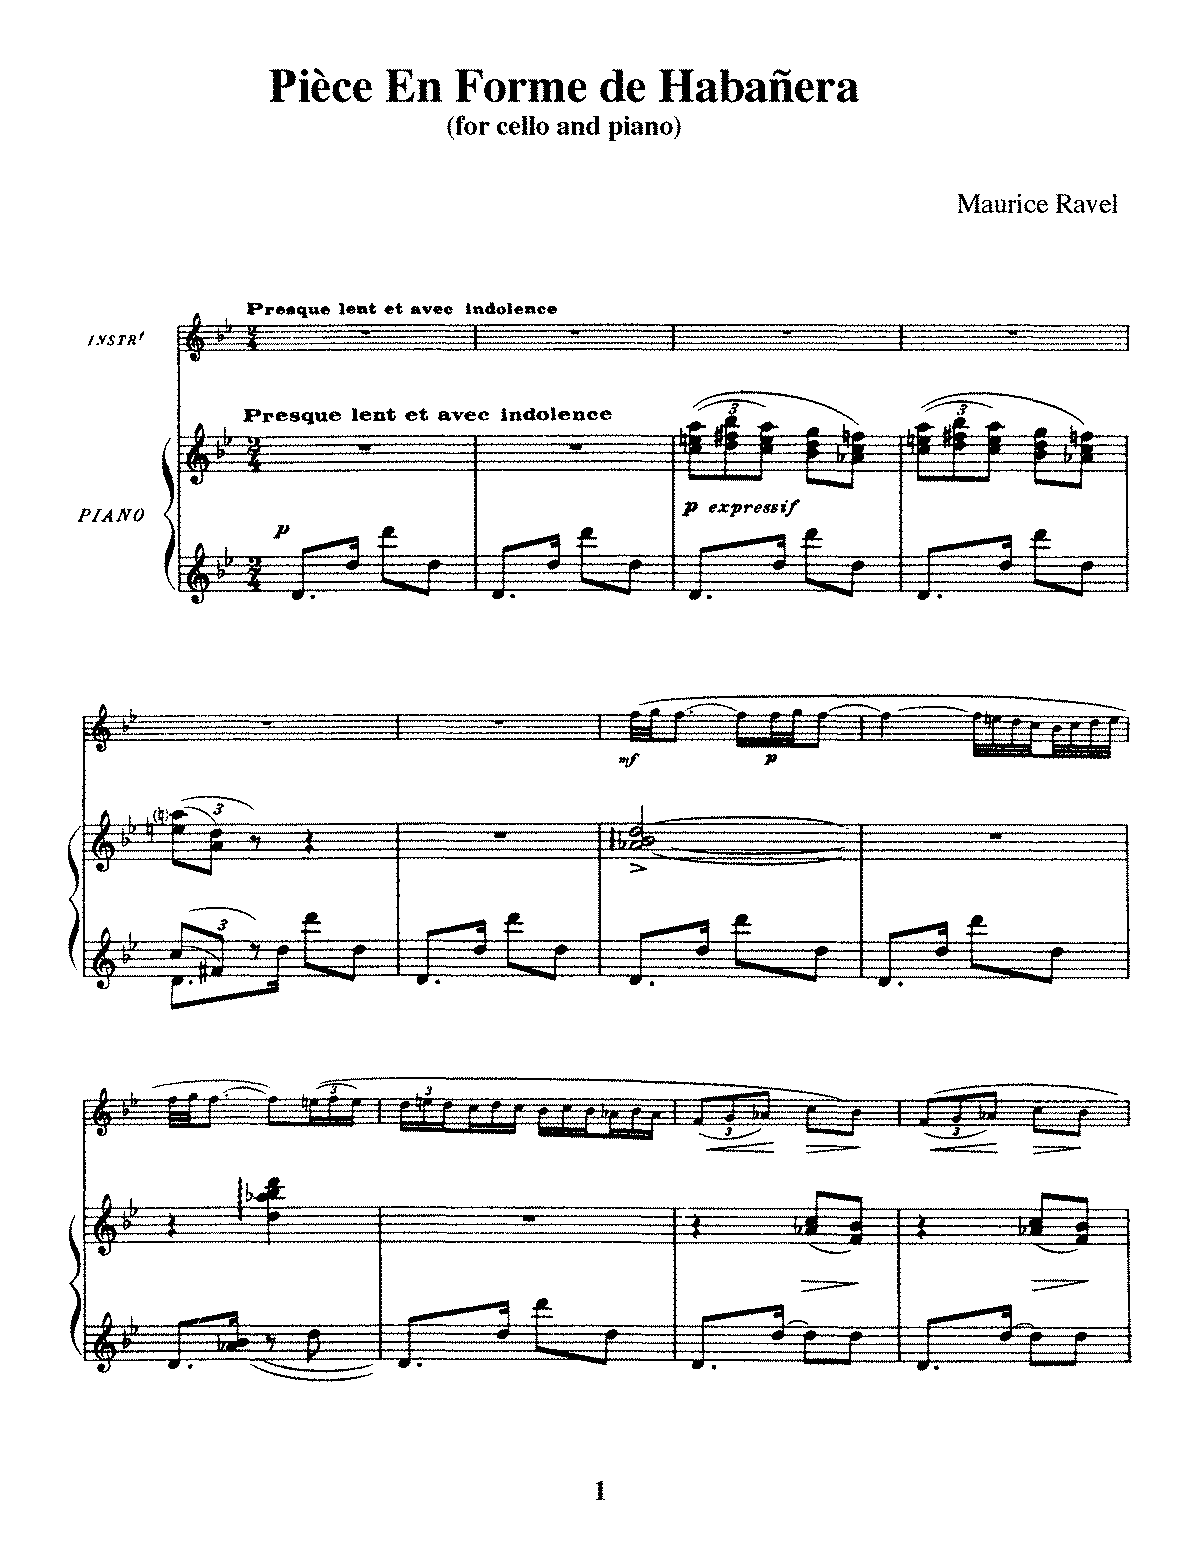 PMLP14944-Ravel - Piece En Forme De Habanera cello piano.pdf